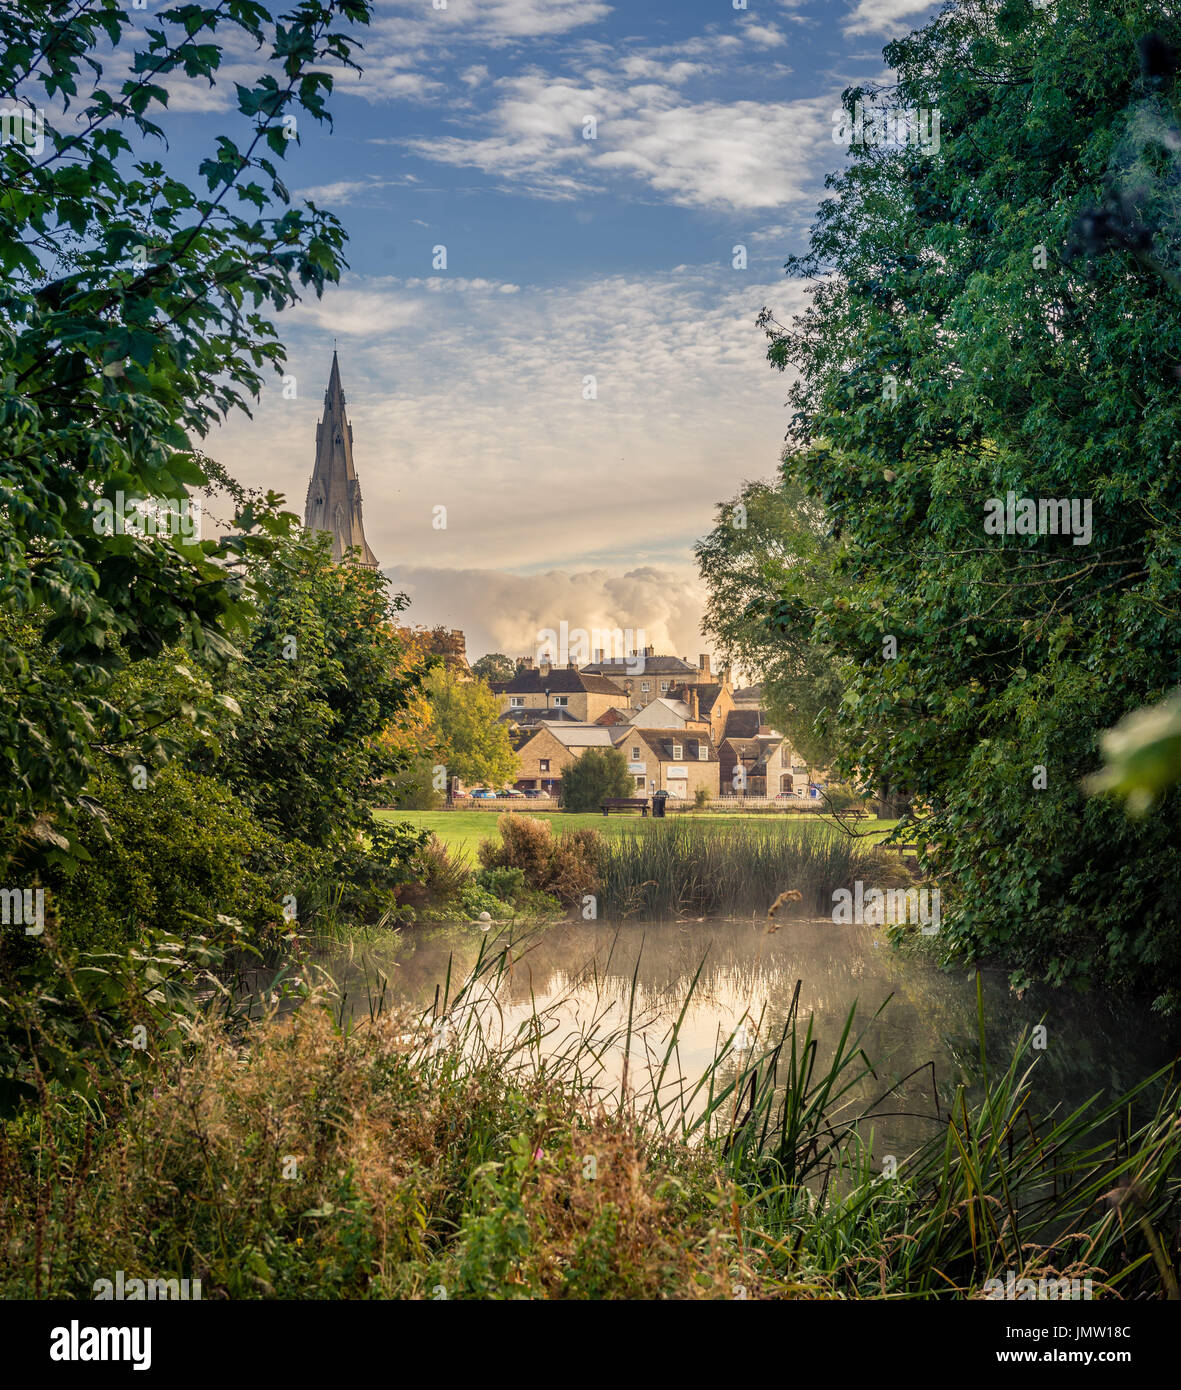 Picturesque Views Of The Historic Lincolnshire Town Of